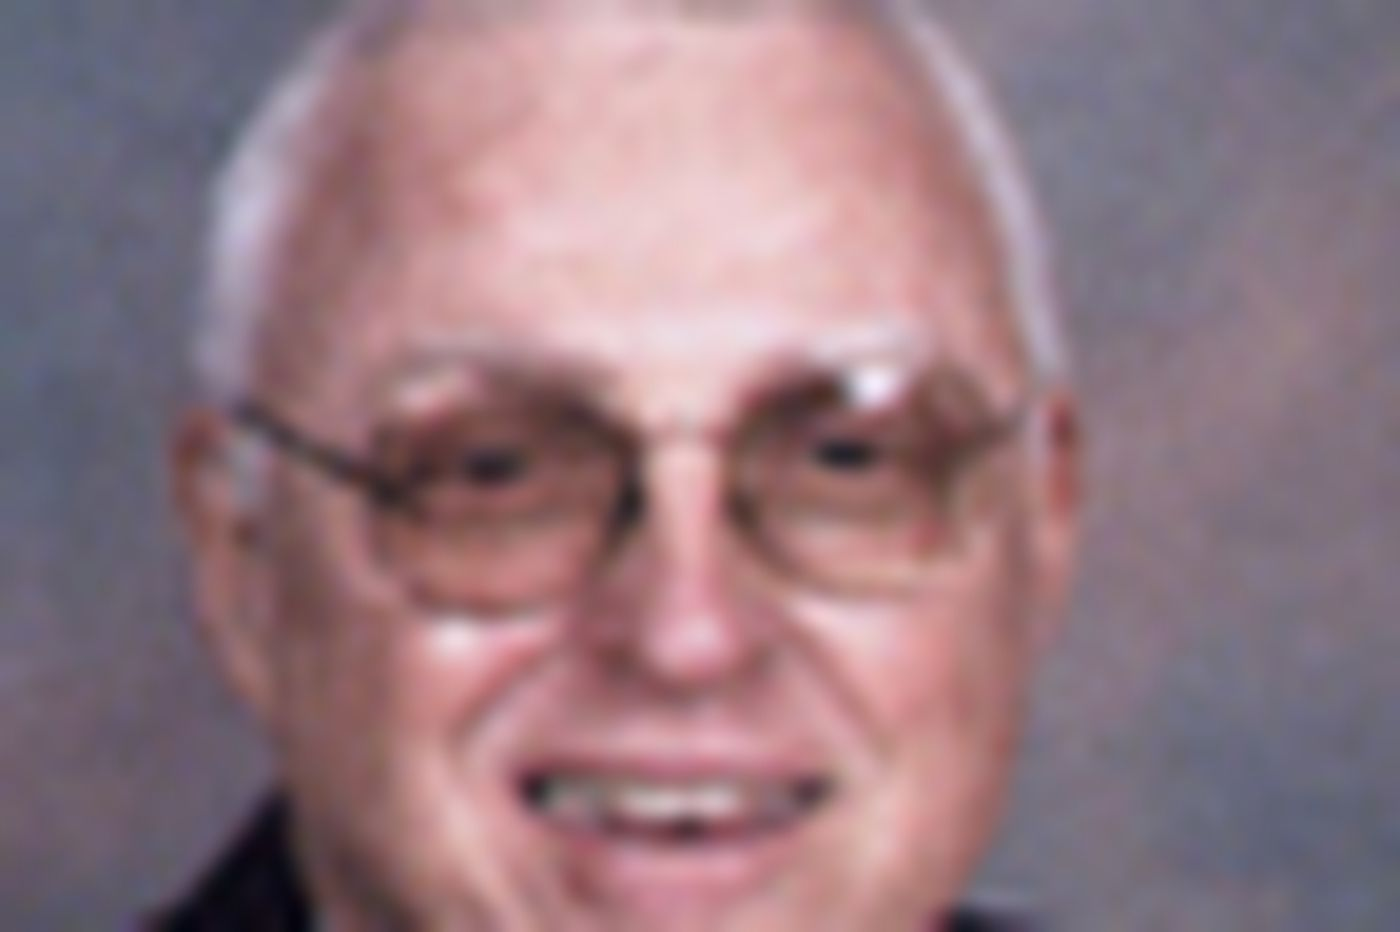 Alleged abuse victim tells of efforts to remove priest